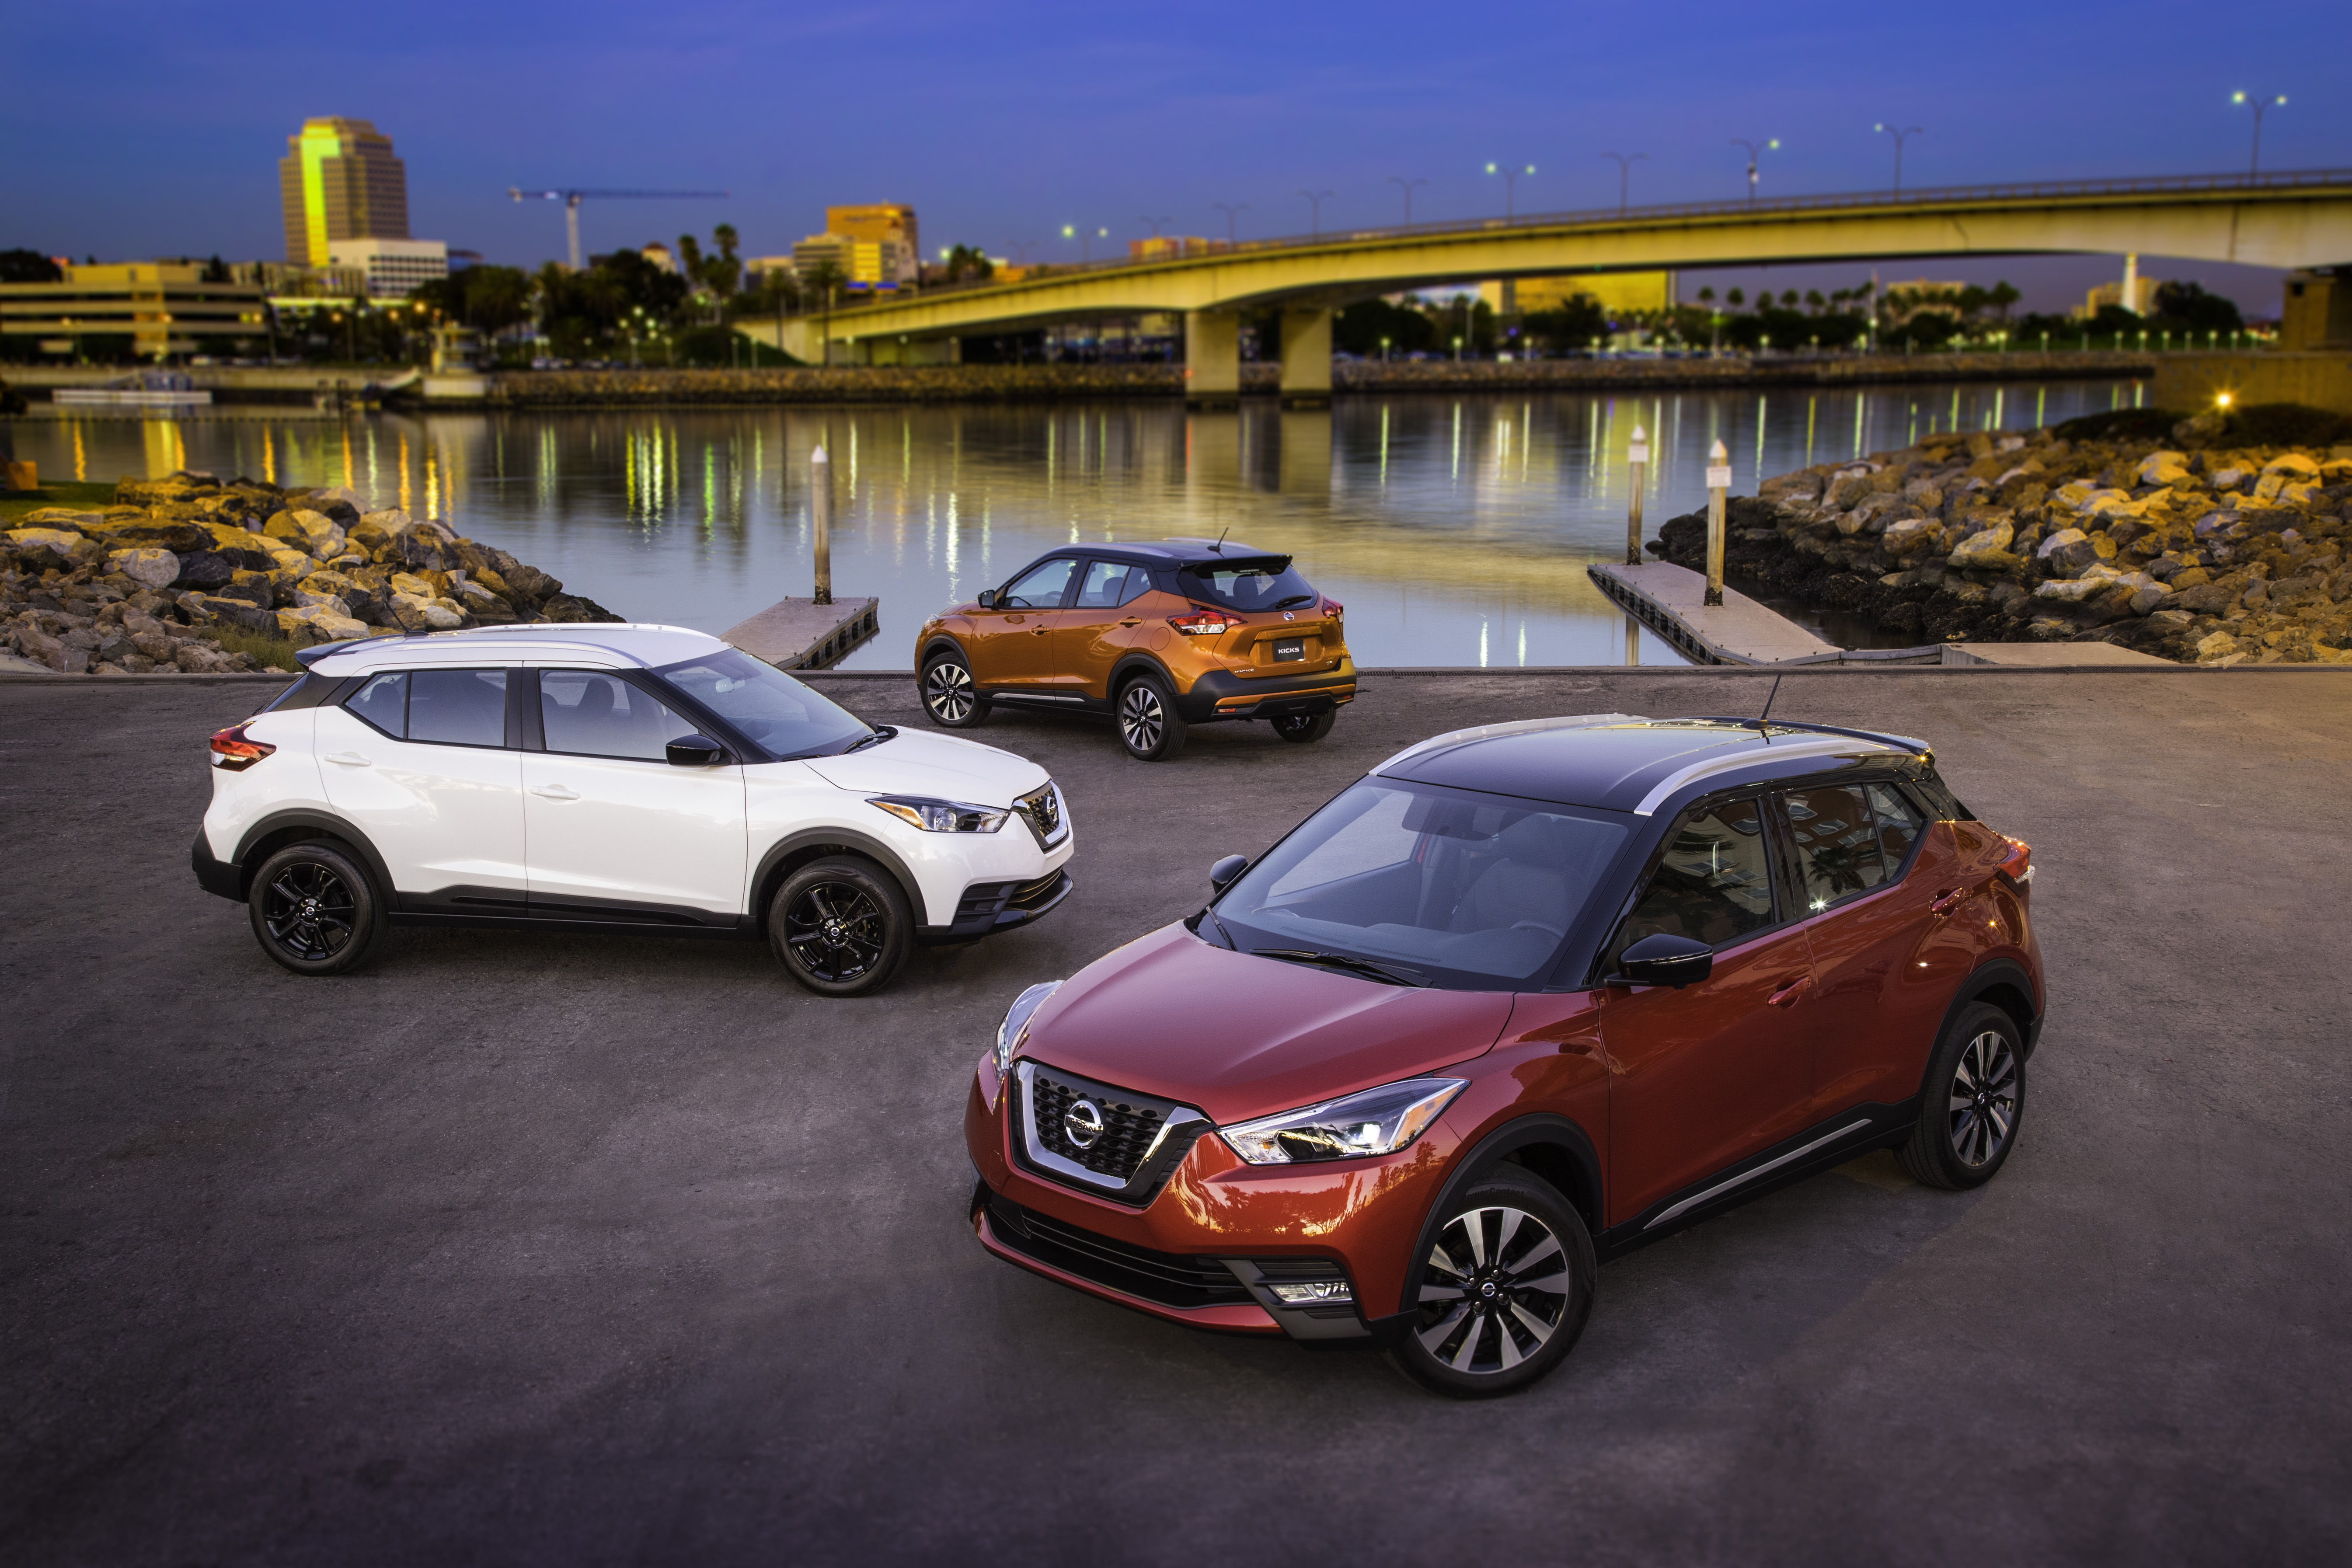 nissan forums nissan forum subcompact nissan kicks coming to north america. Black Bedroom Furniture Sets. Home Design Ideas